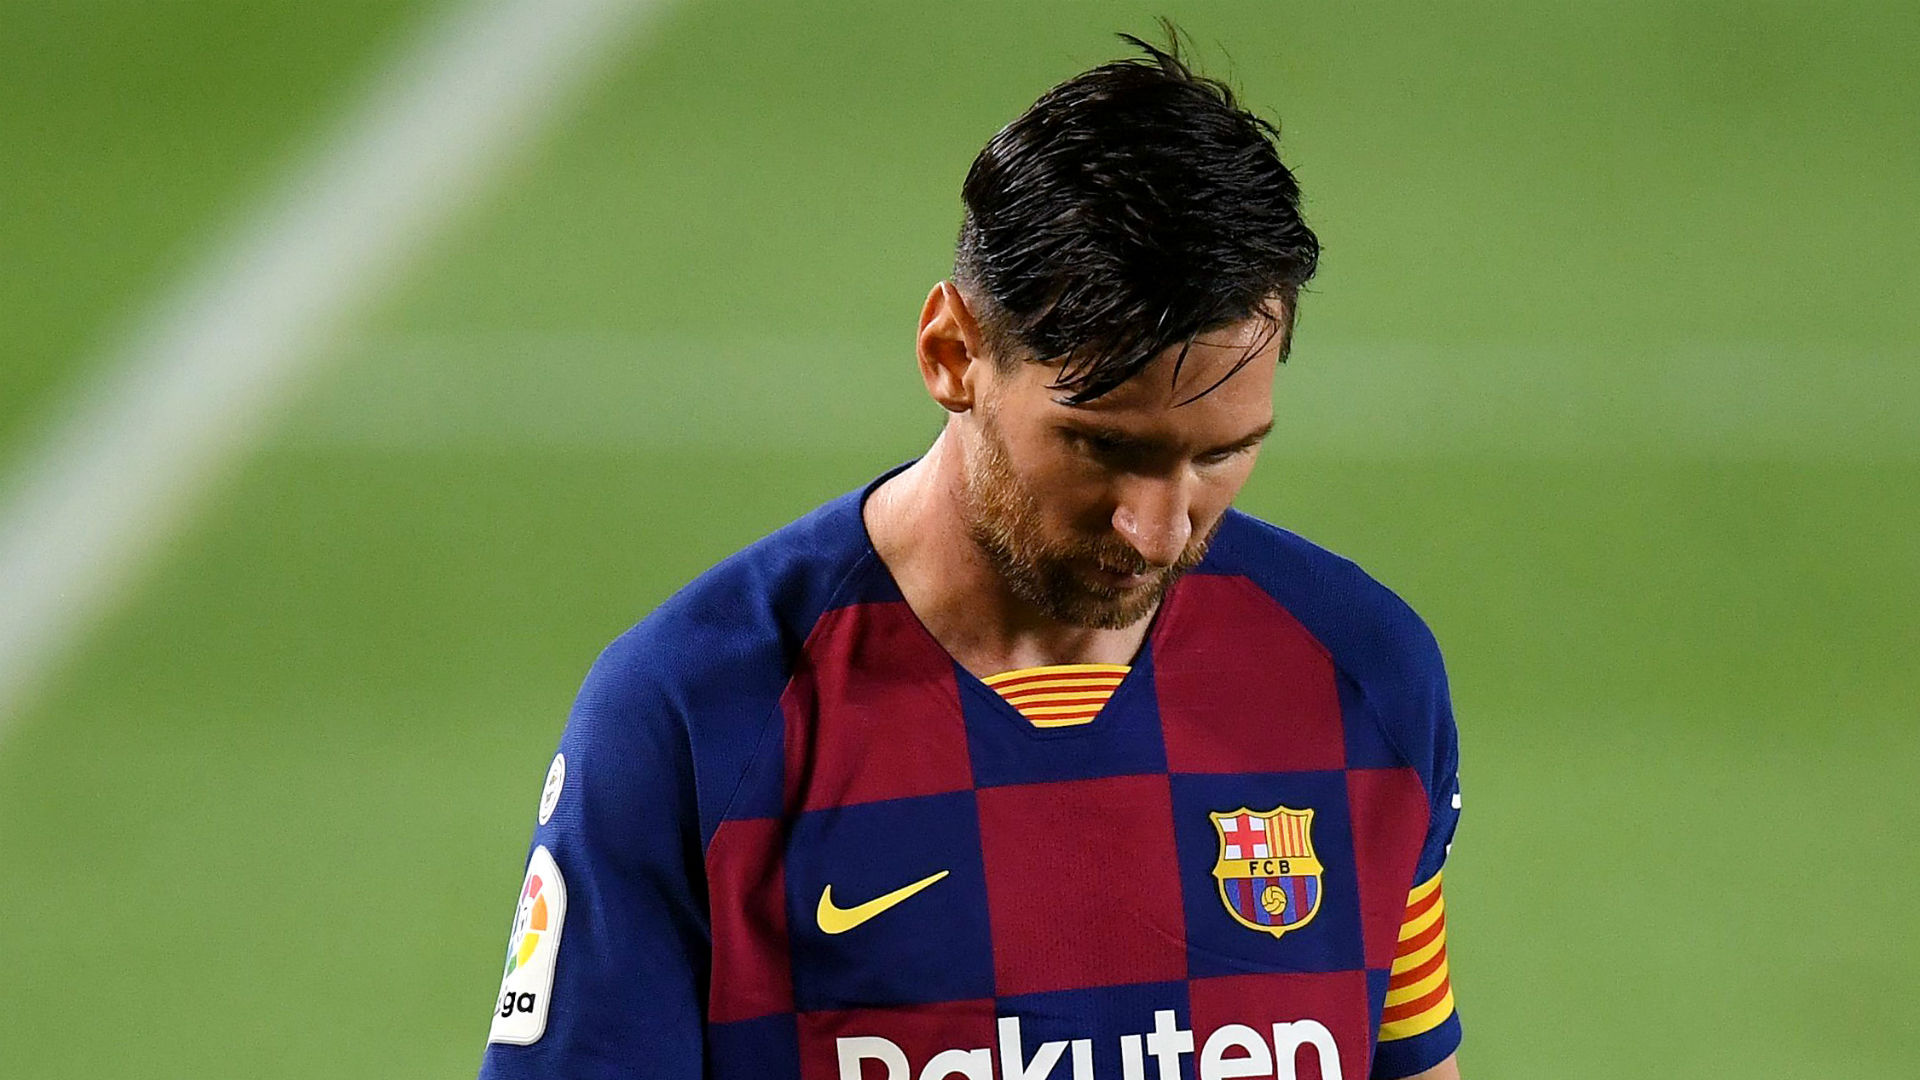 'Has he got the time to sit there and wait?' – Ferdinand hints Messi could consider Barcelona exit